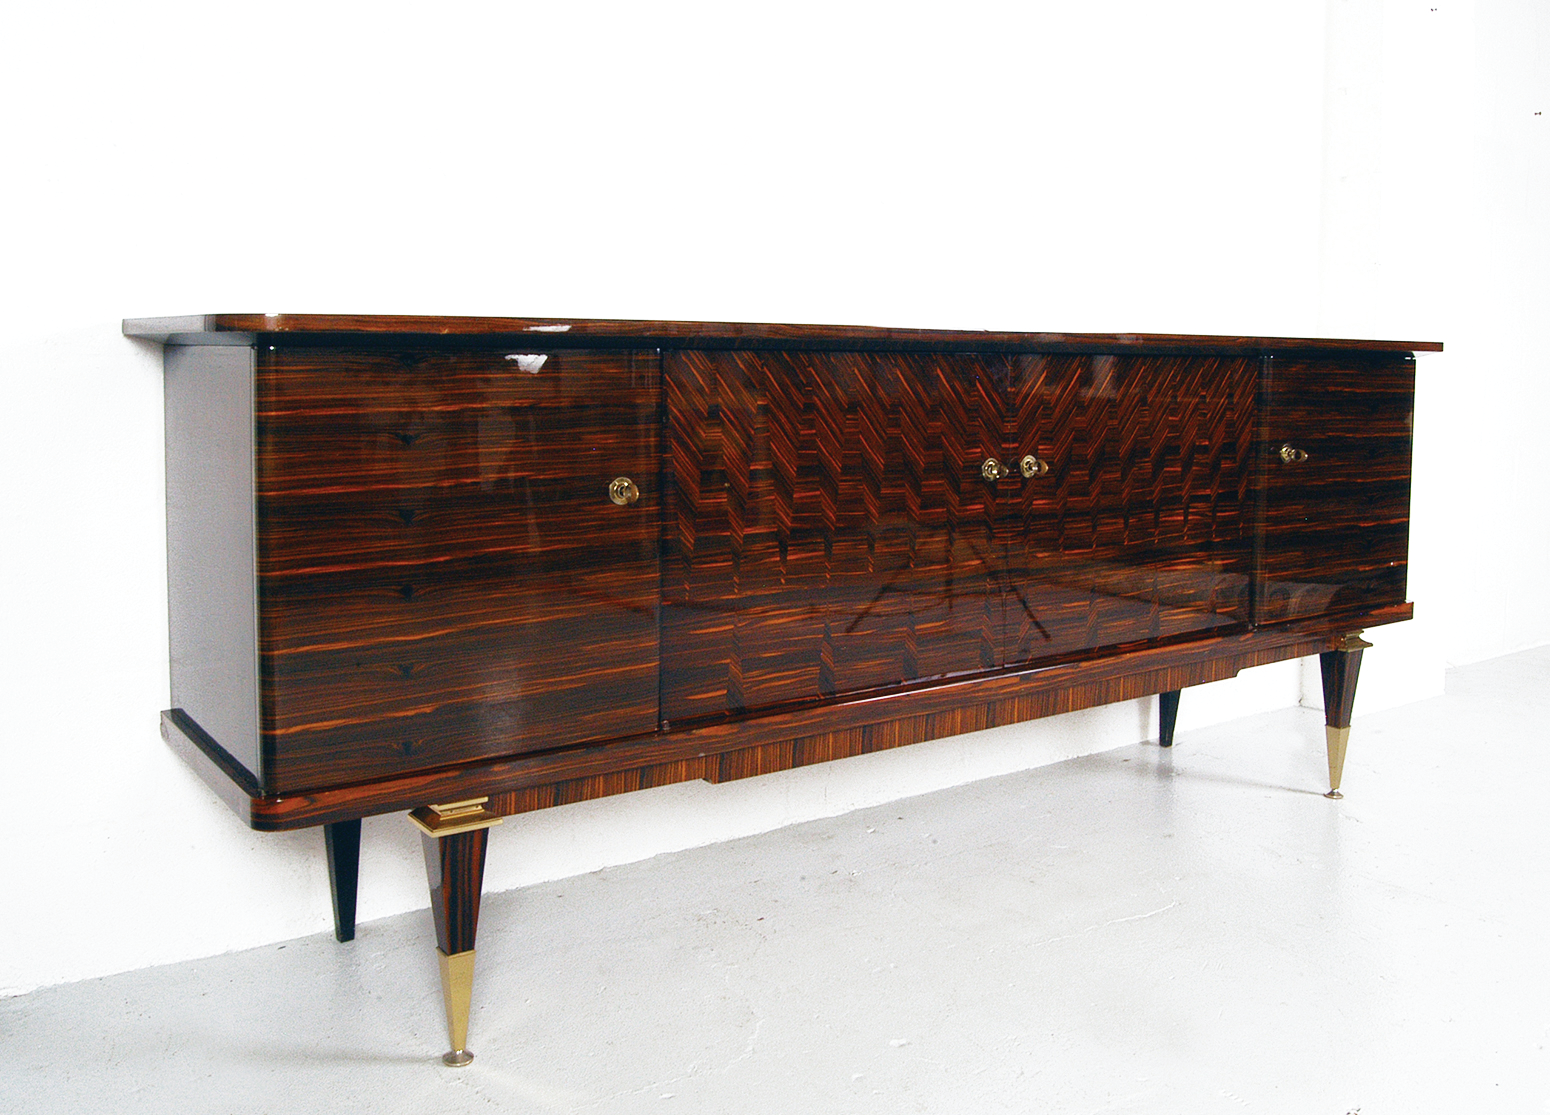 Left: Late 1930s French Macassar Ebony sideboard, with the most striking grain pattern. Price: £5,300. Available from    molecula.co.uk